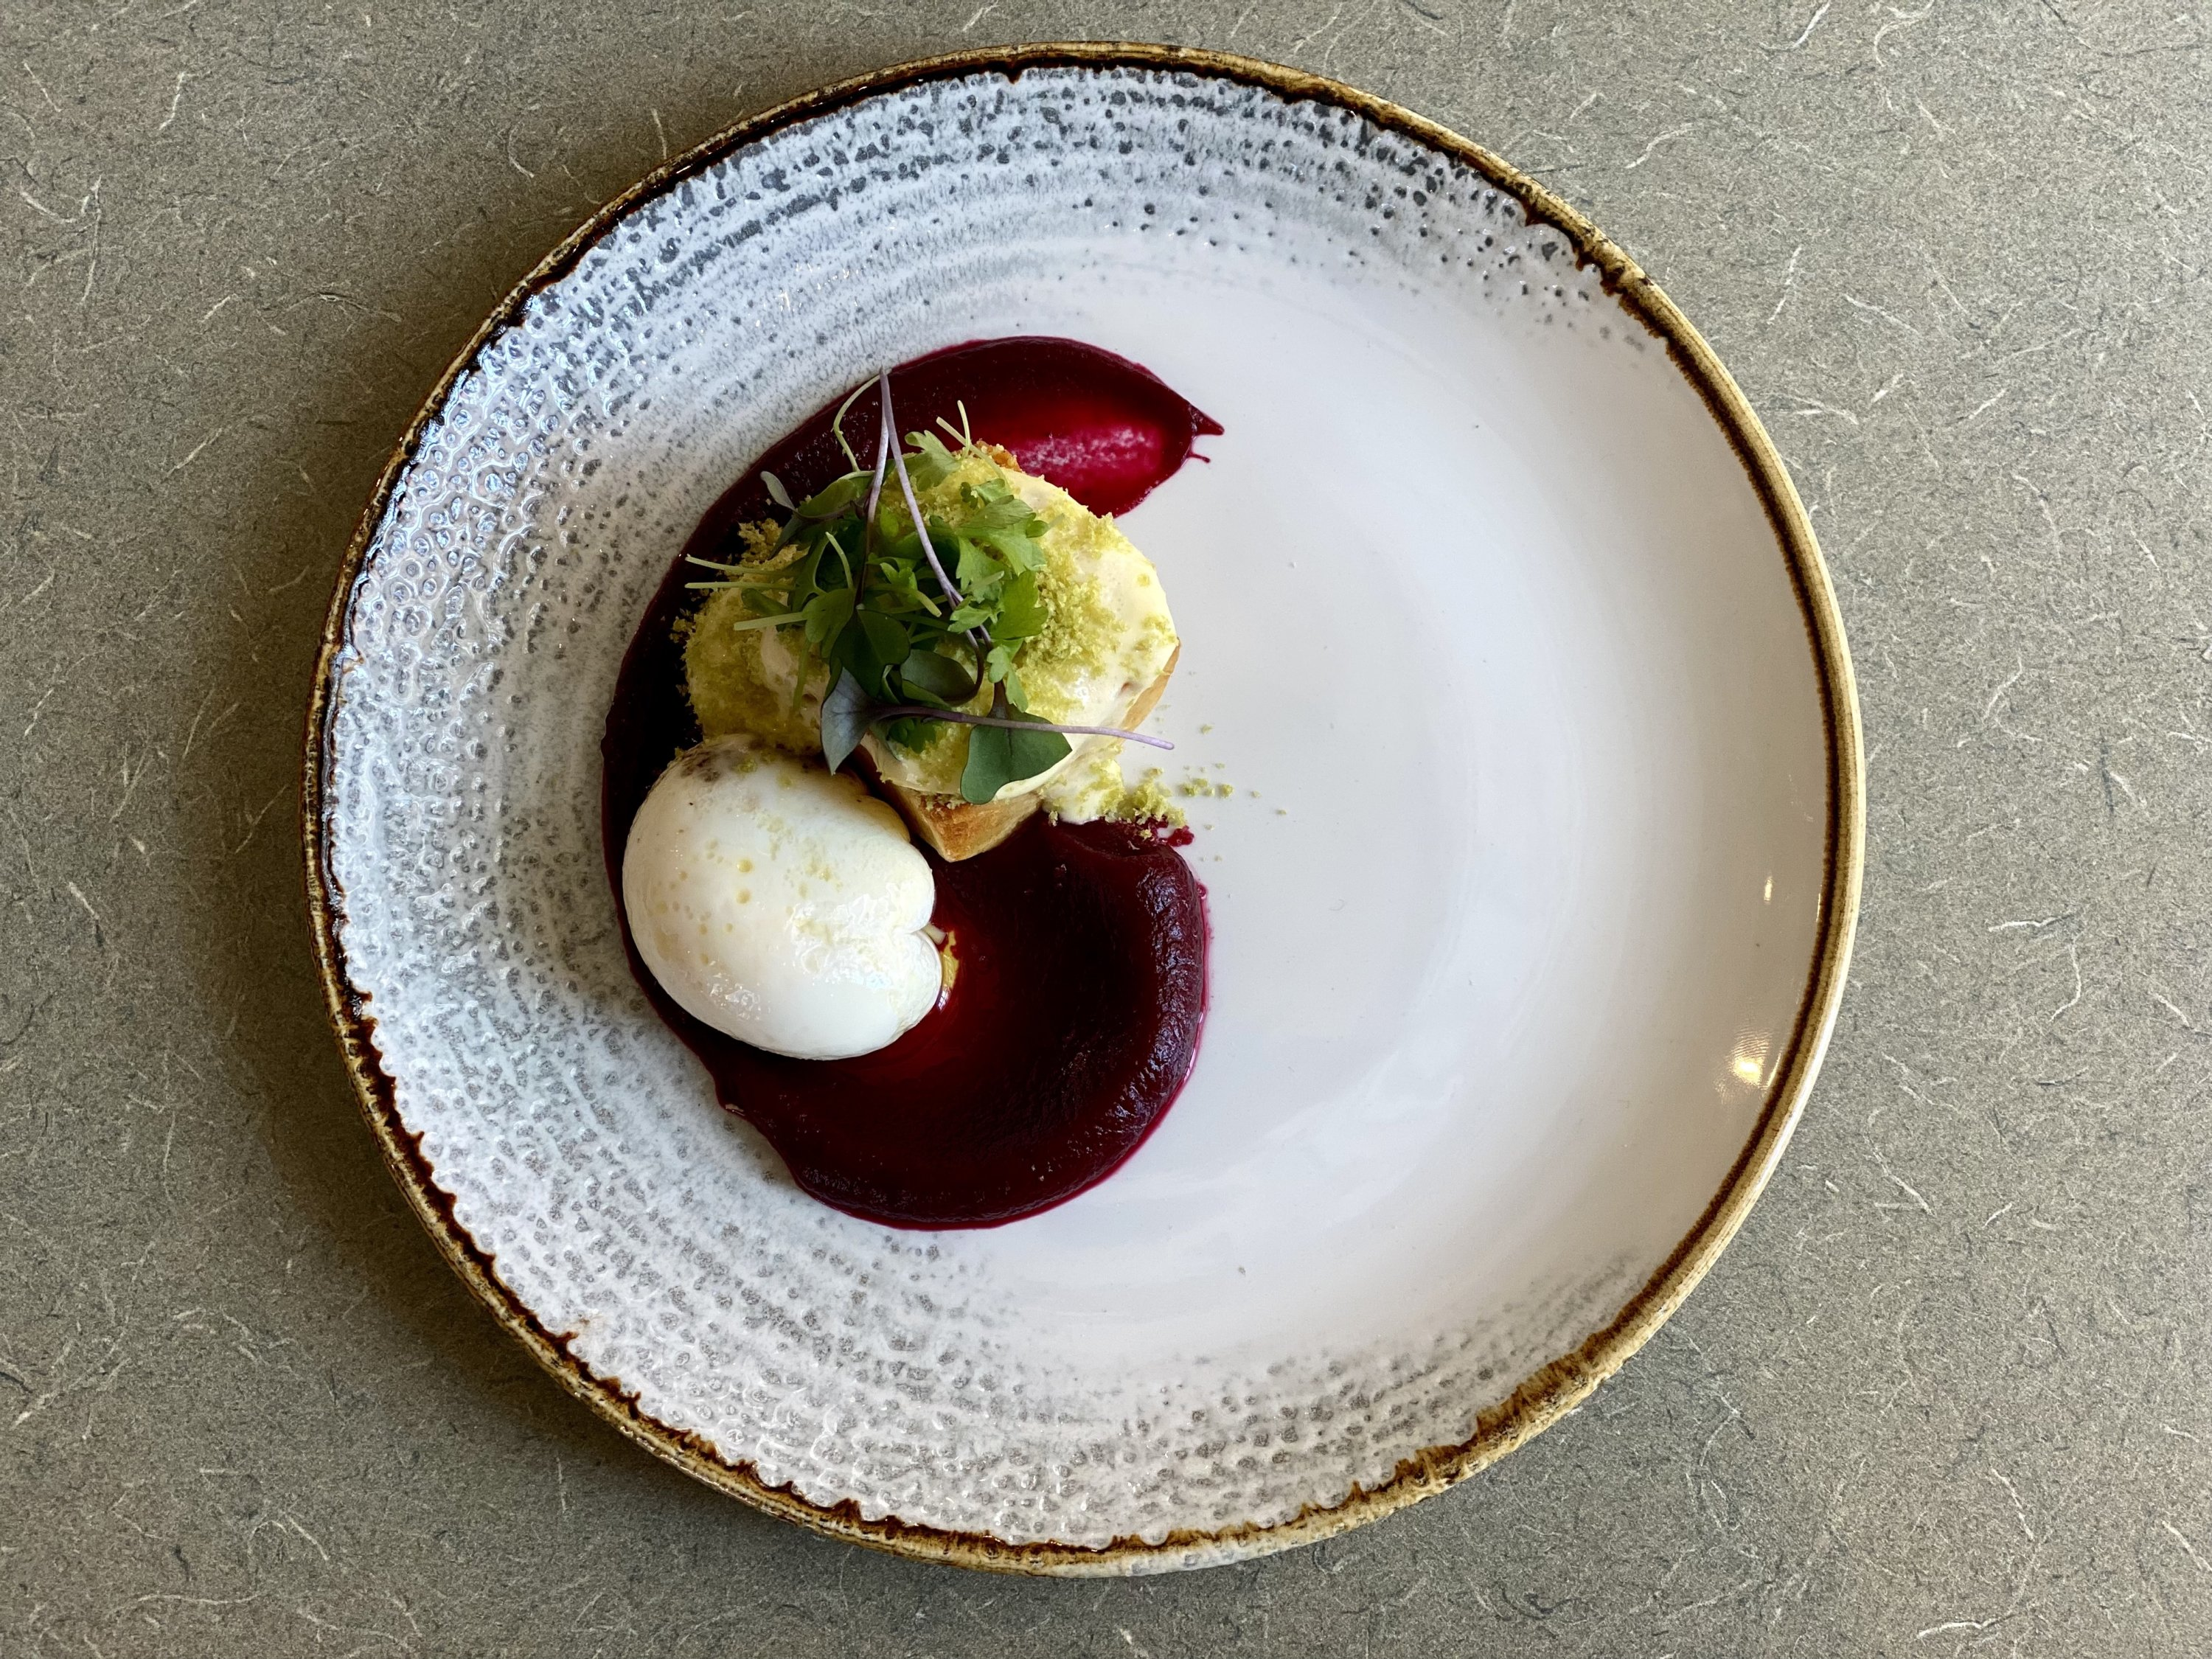 The Russian salad is garnished with beets and potatoes.  Photo courtesy of Immigrant Food.